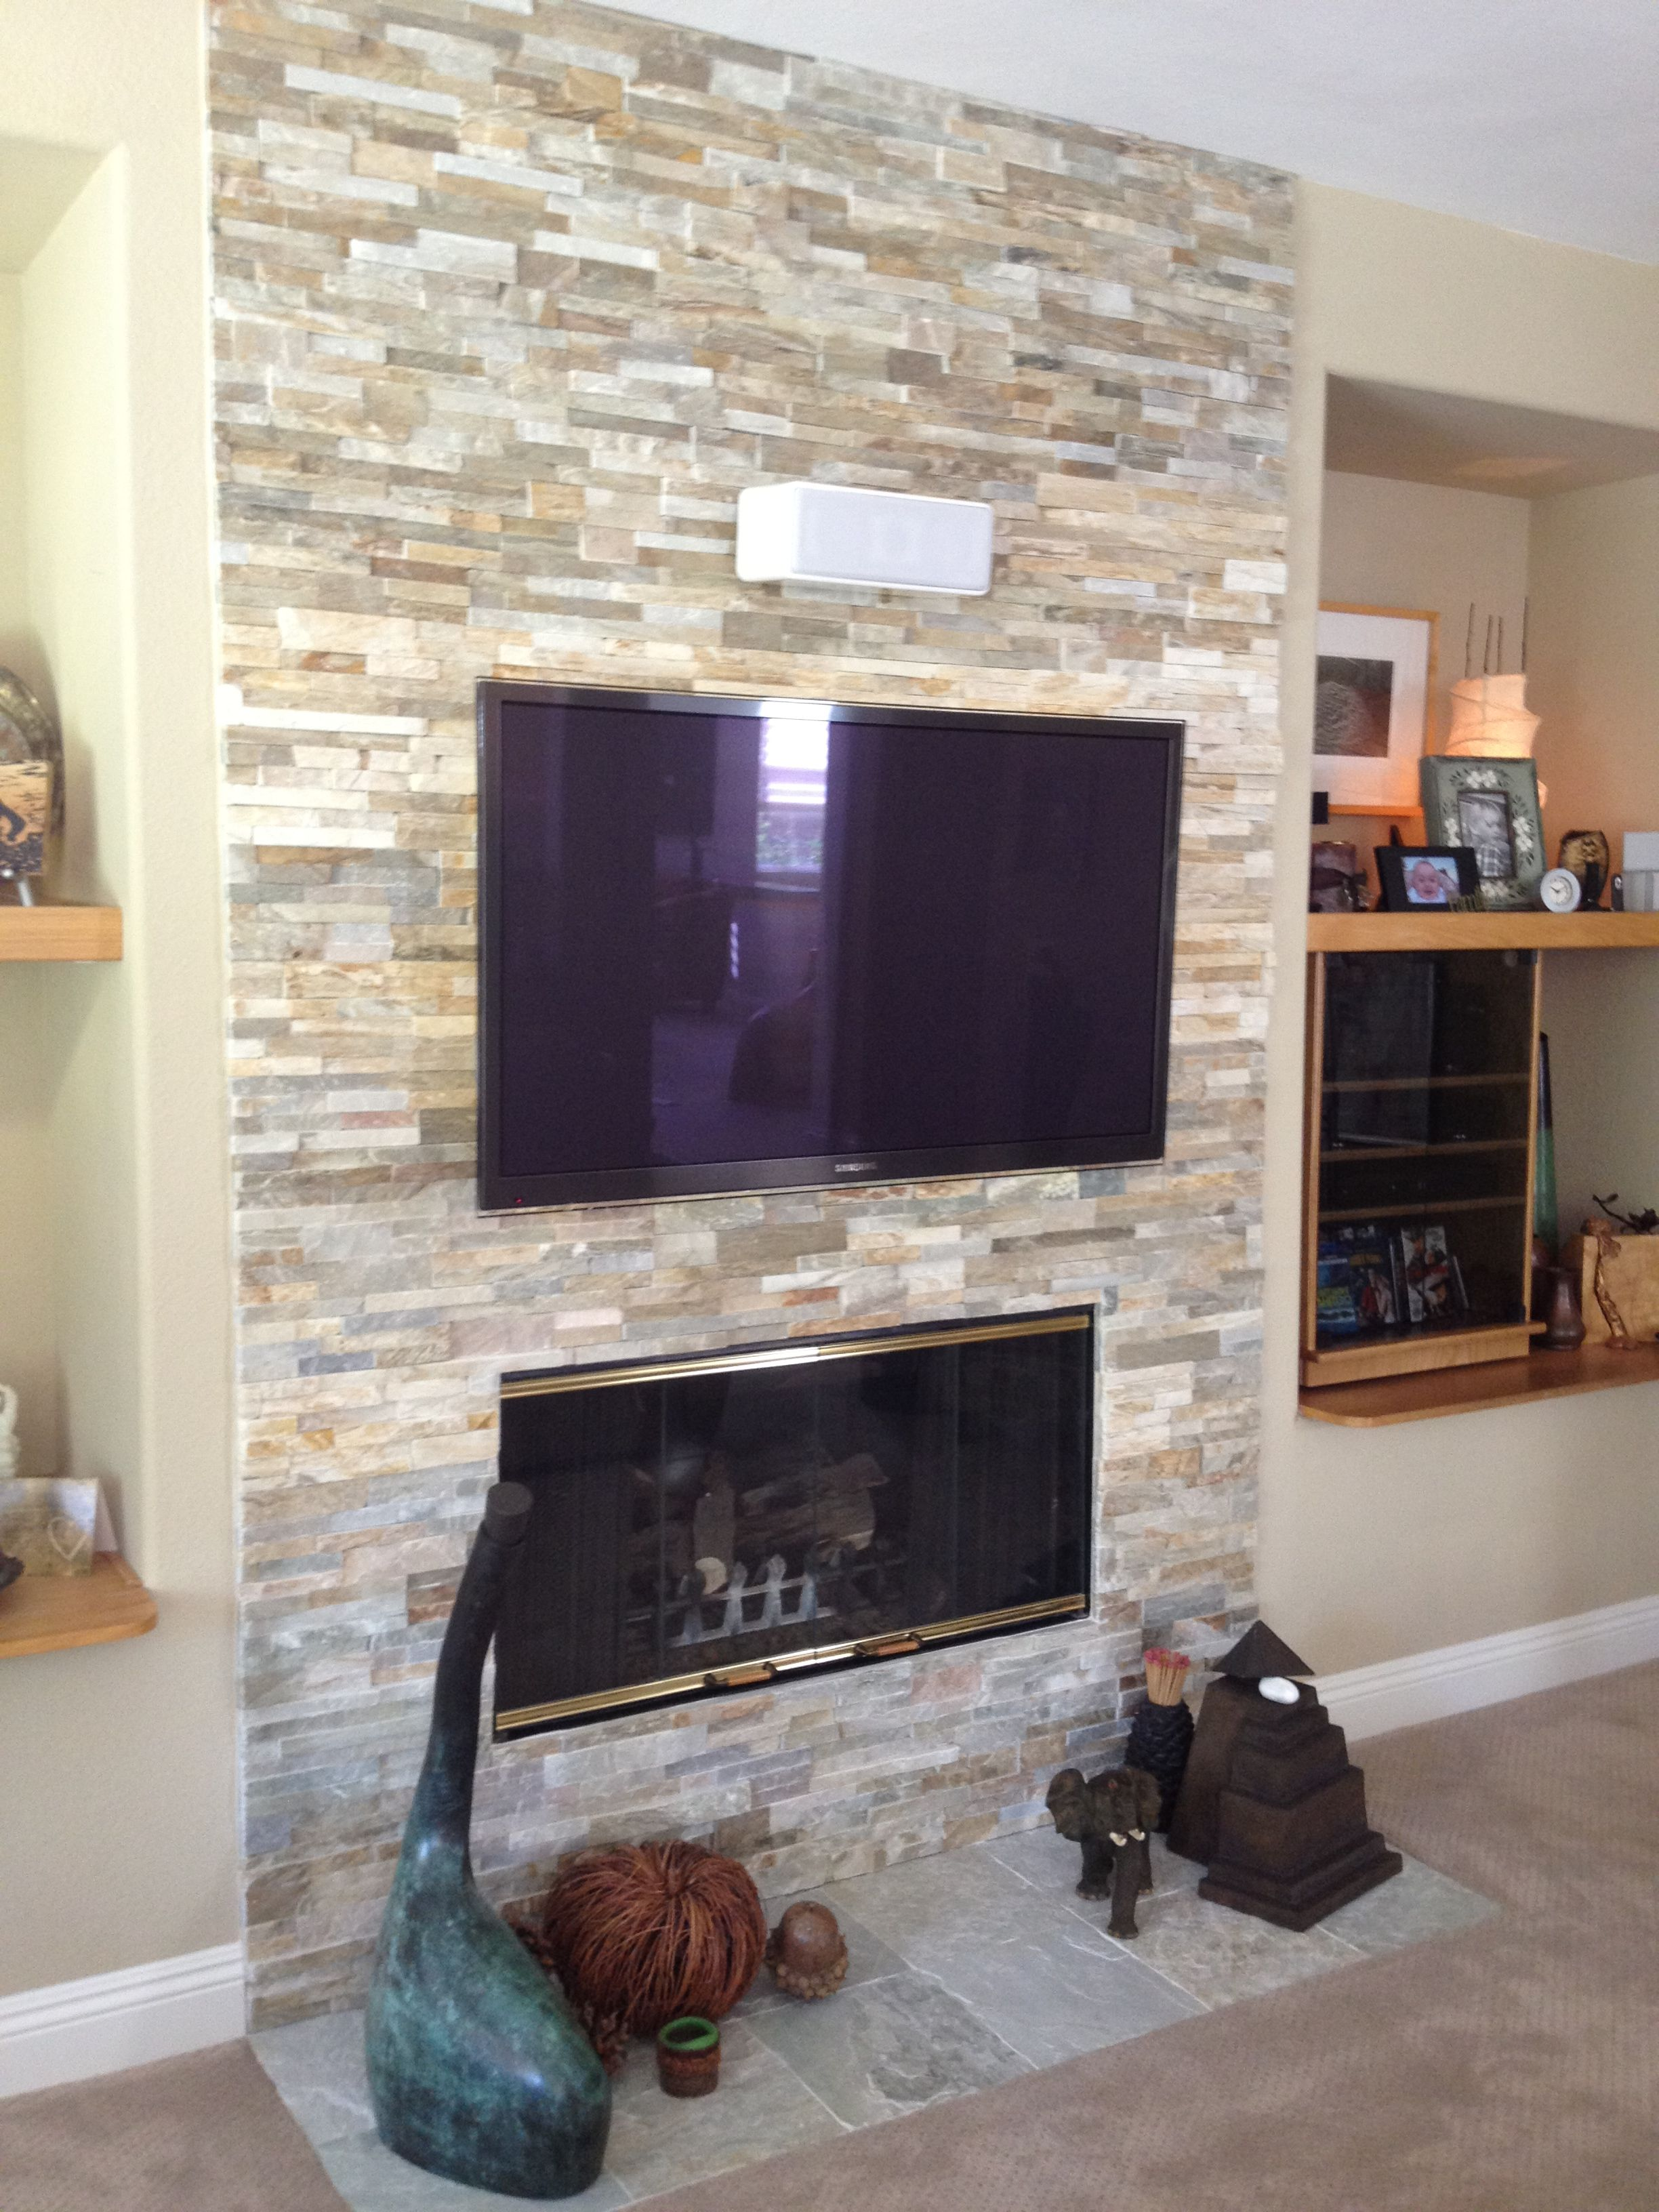 Designing A Living Room With A Fireplace And Tv Awesome Fireplace Remodels Ideas  Scroll Down For A Photo Of What This Review